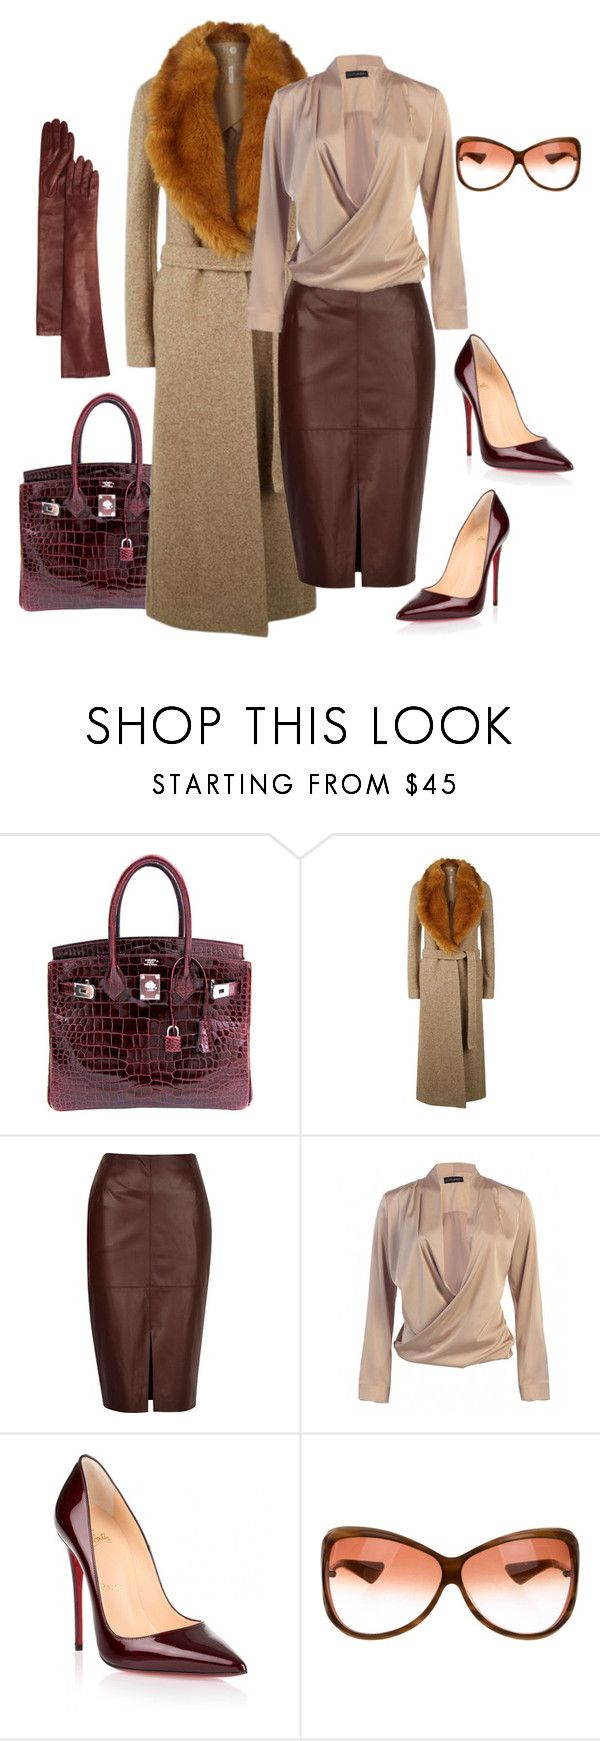 """Untitled #517"" by sanchez-drummond ❤ liked on Polyvore featuring Hermès, Helmut Lang, River Island, Christian Louboutin, Oliver Peoples and Bloomingdale's"